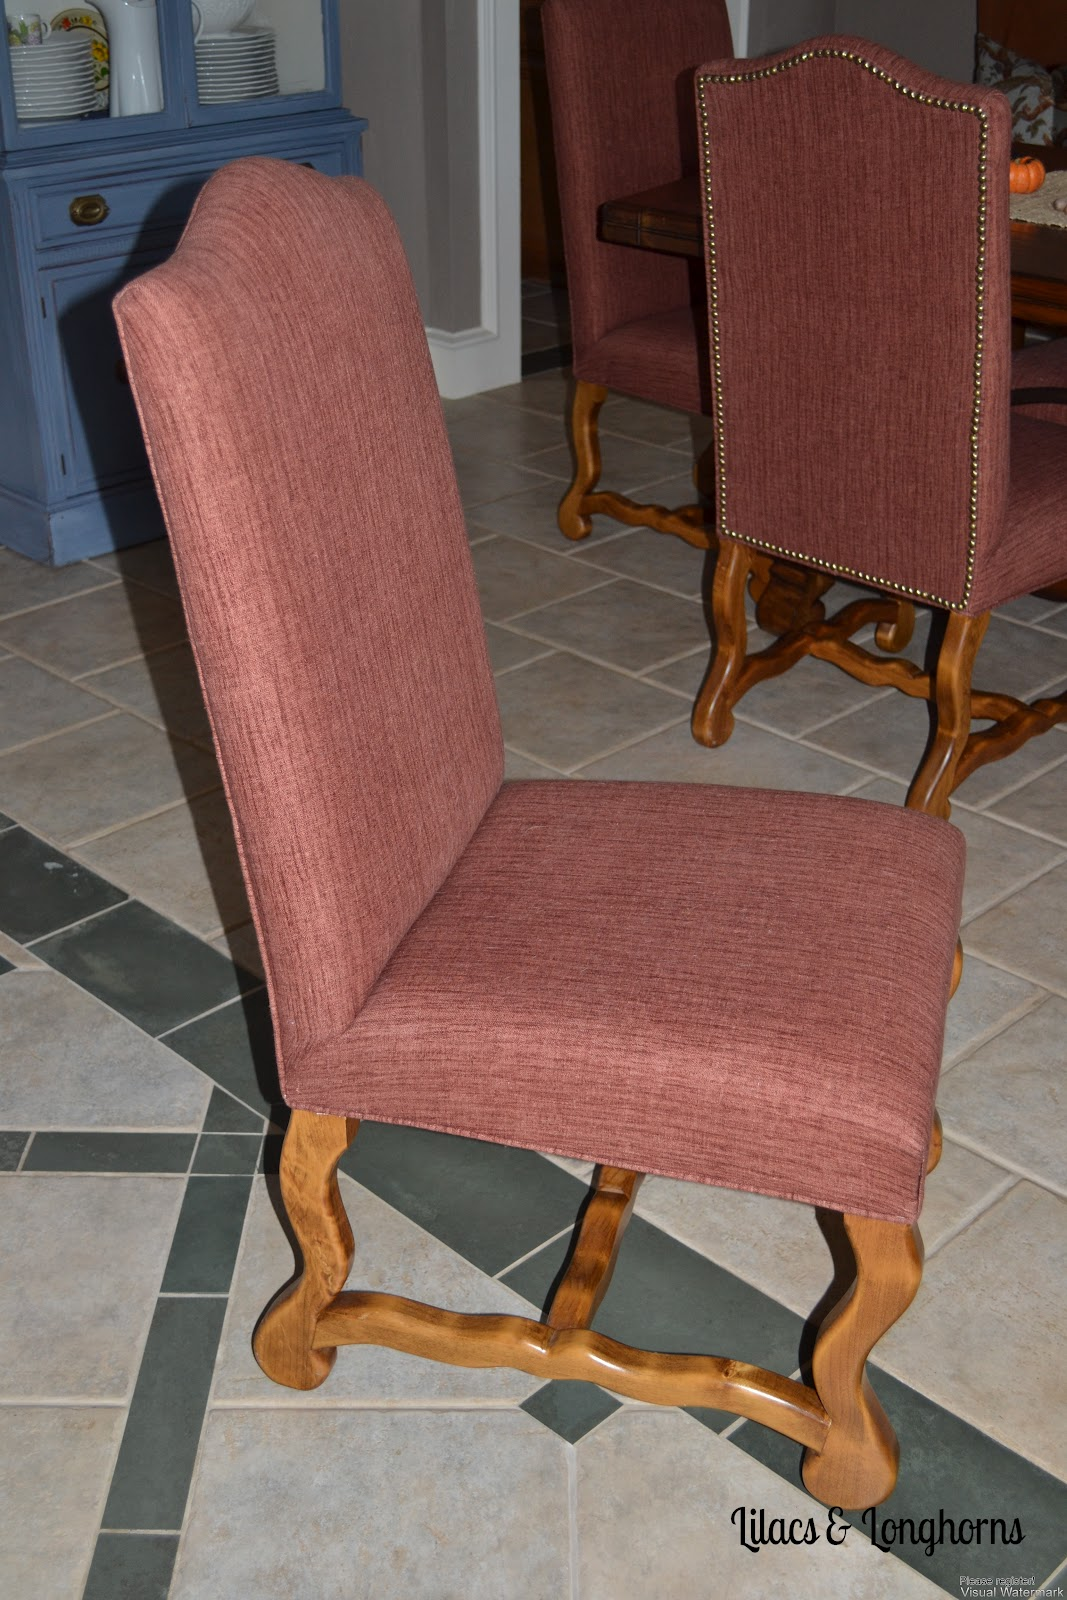 Reupholstering Dining Room Chairs Cost To Reupholster Dining Room Chairs Furnitures Online Usa